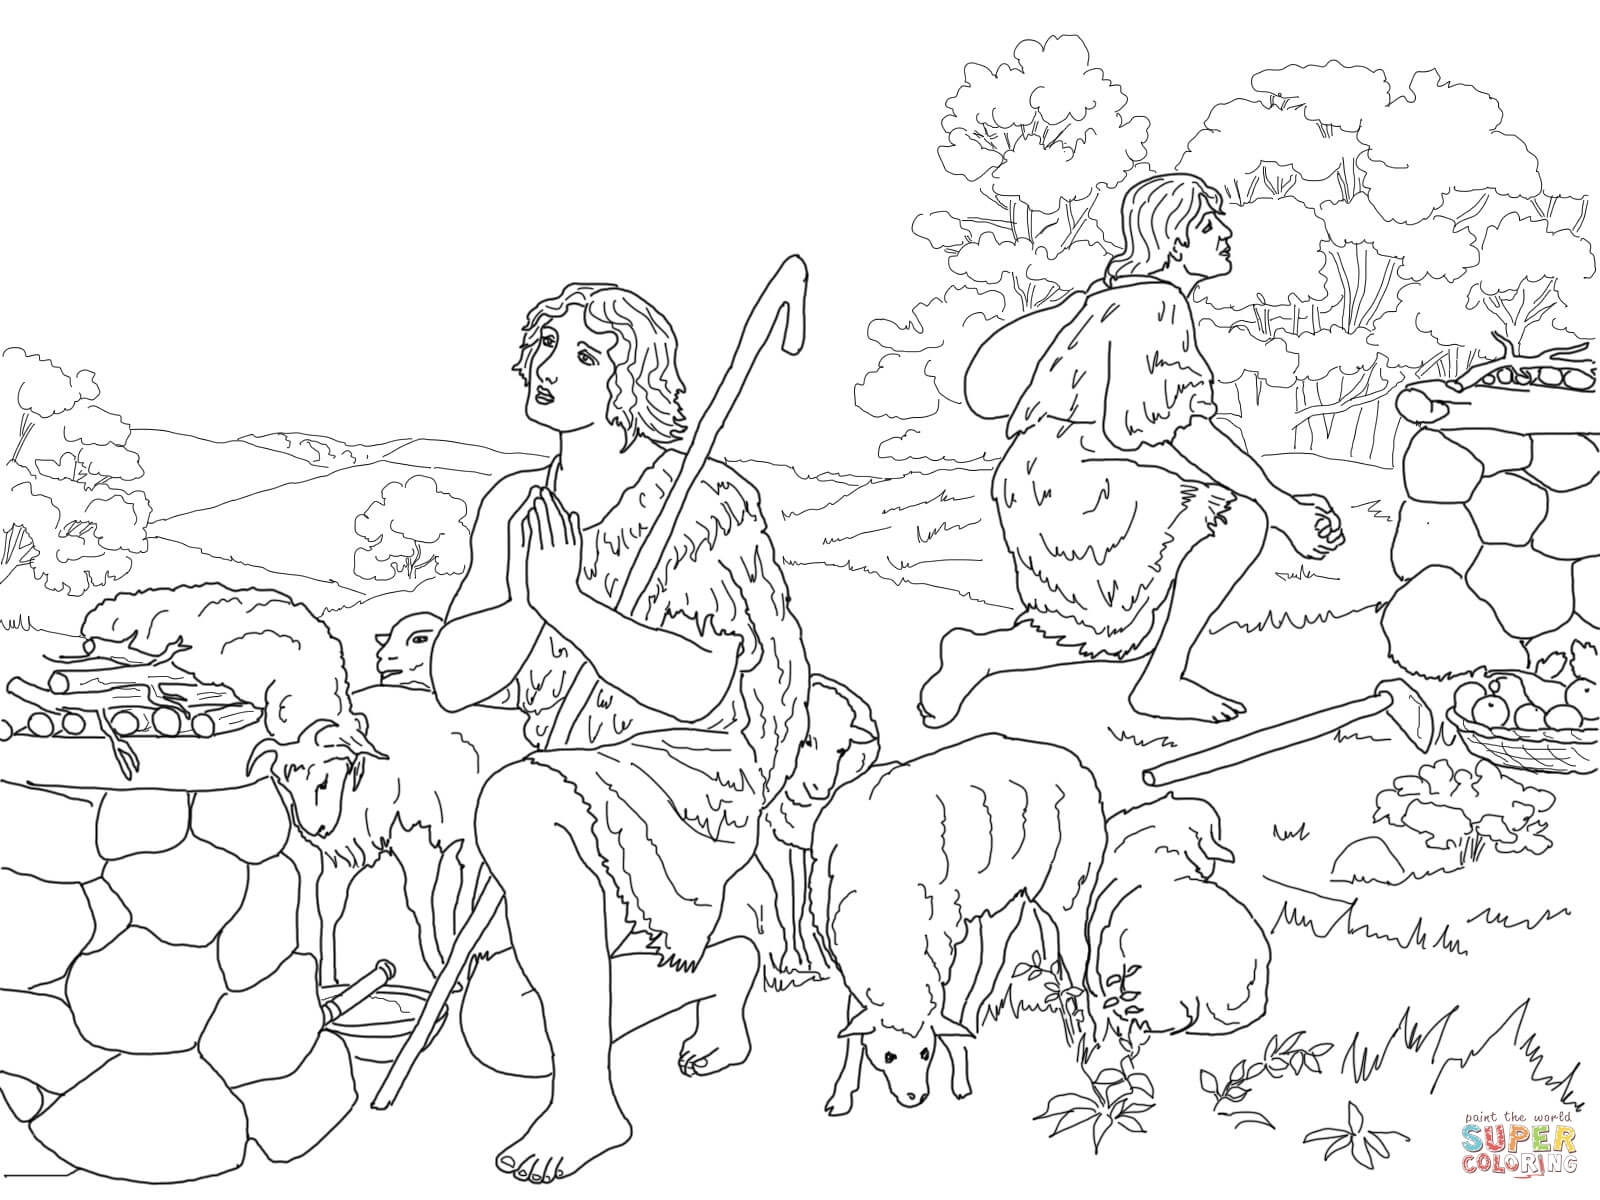 cain and abel coloring page - Cain and Abel